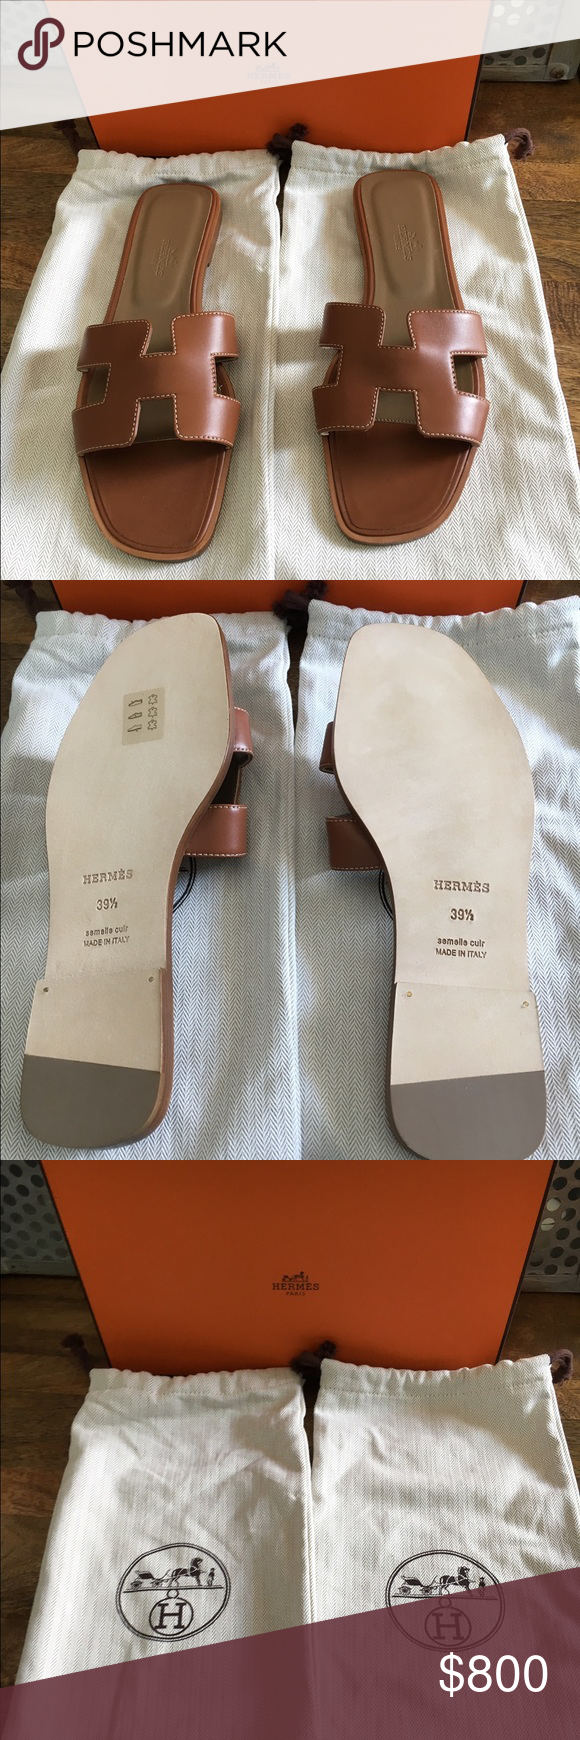 Hermes sandals dance shoes - Herm S Oran Flat Sandal Gold Tan 39 5 Brand New With Box And Dust Bags Sold